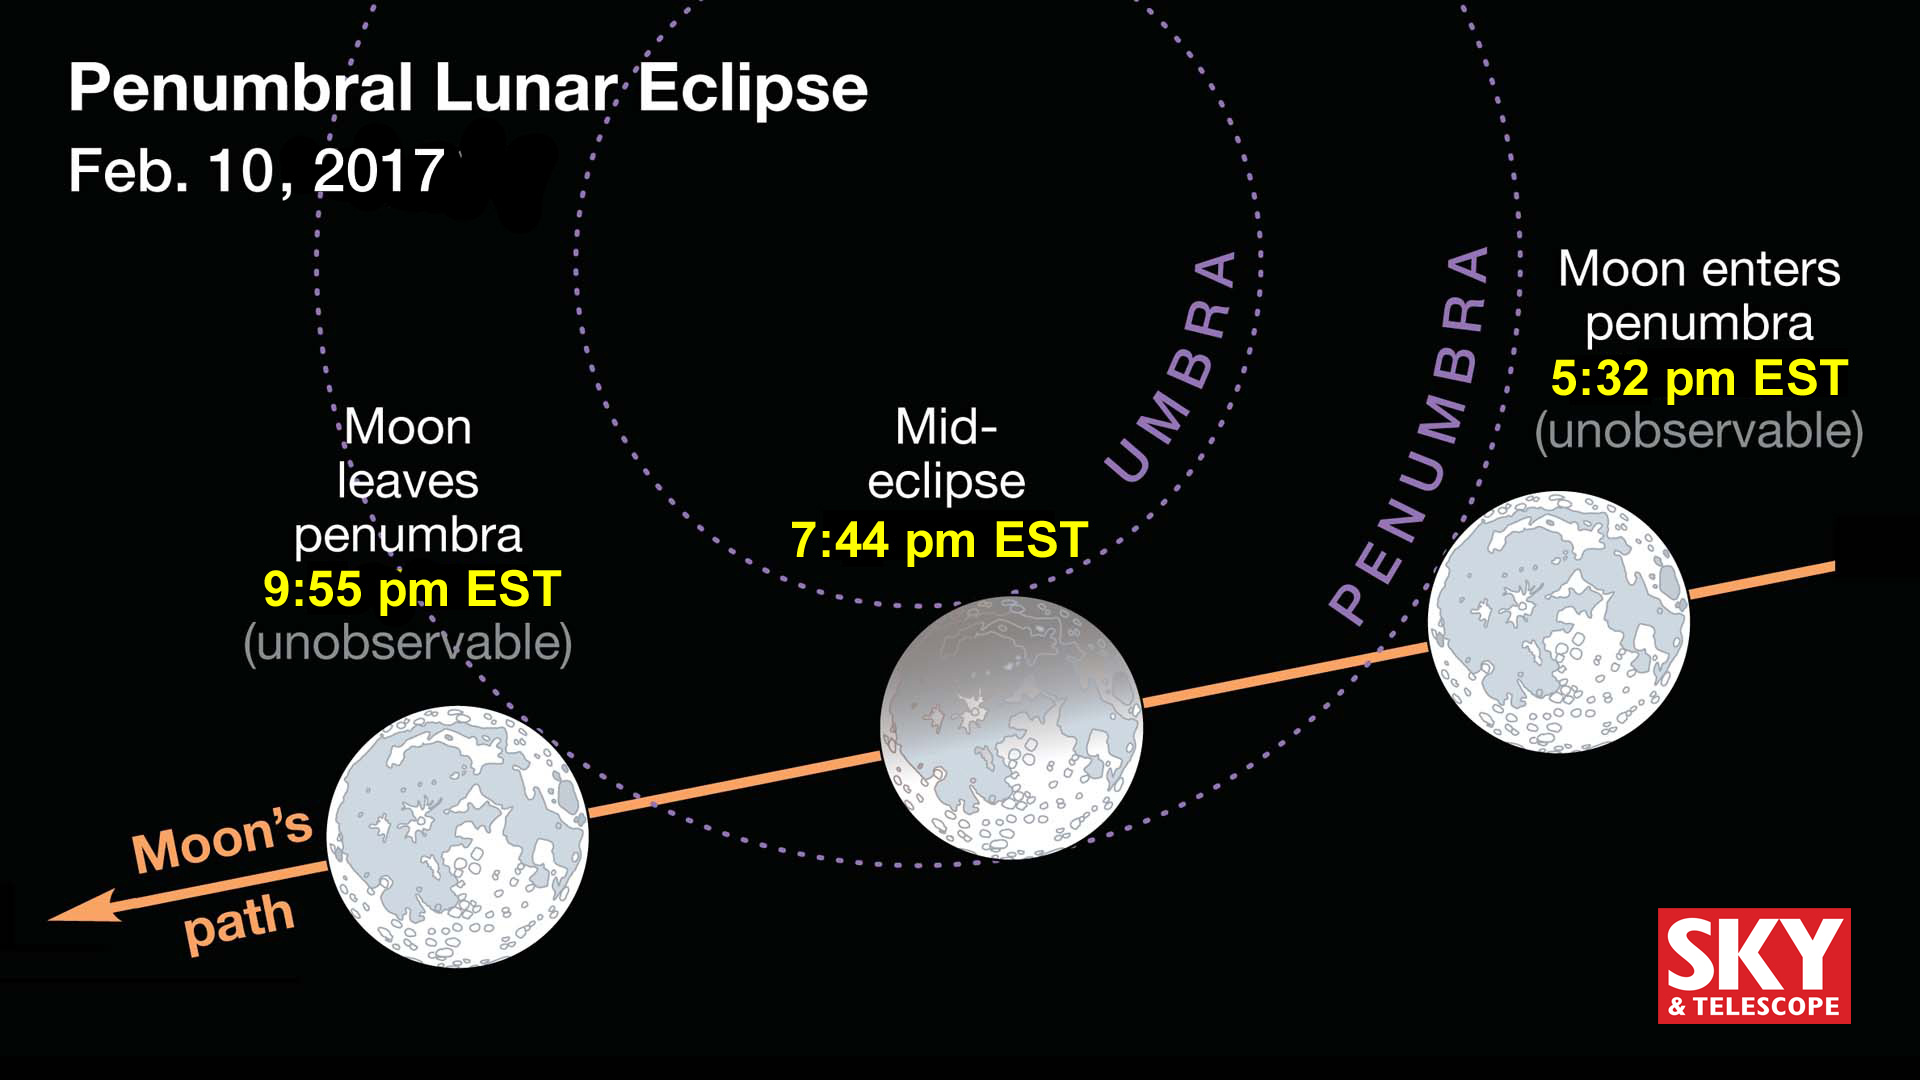 Friday Night's Deep Penumbral Lunar Eclipse - Sky & Telescope